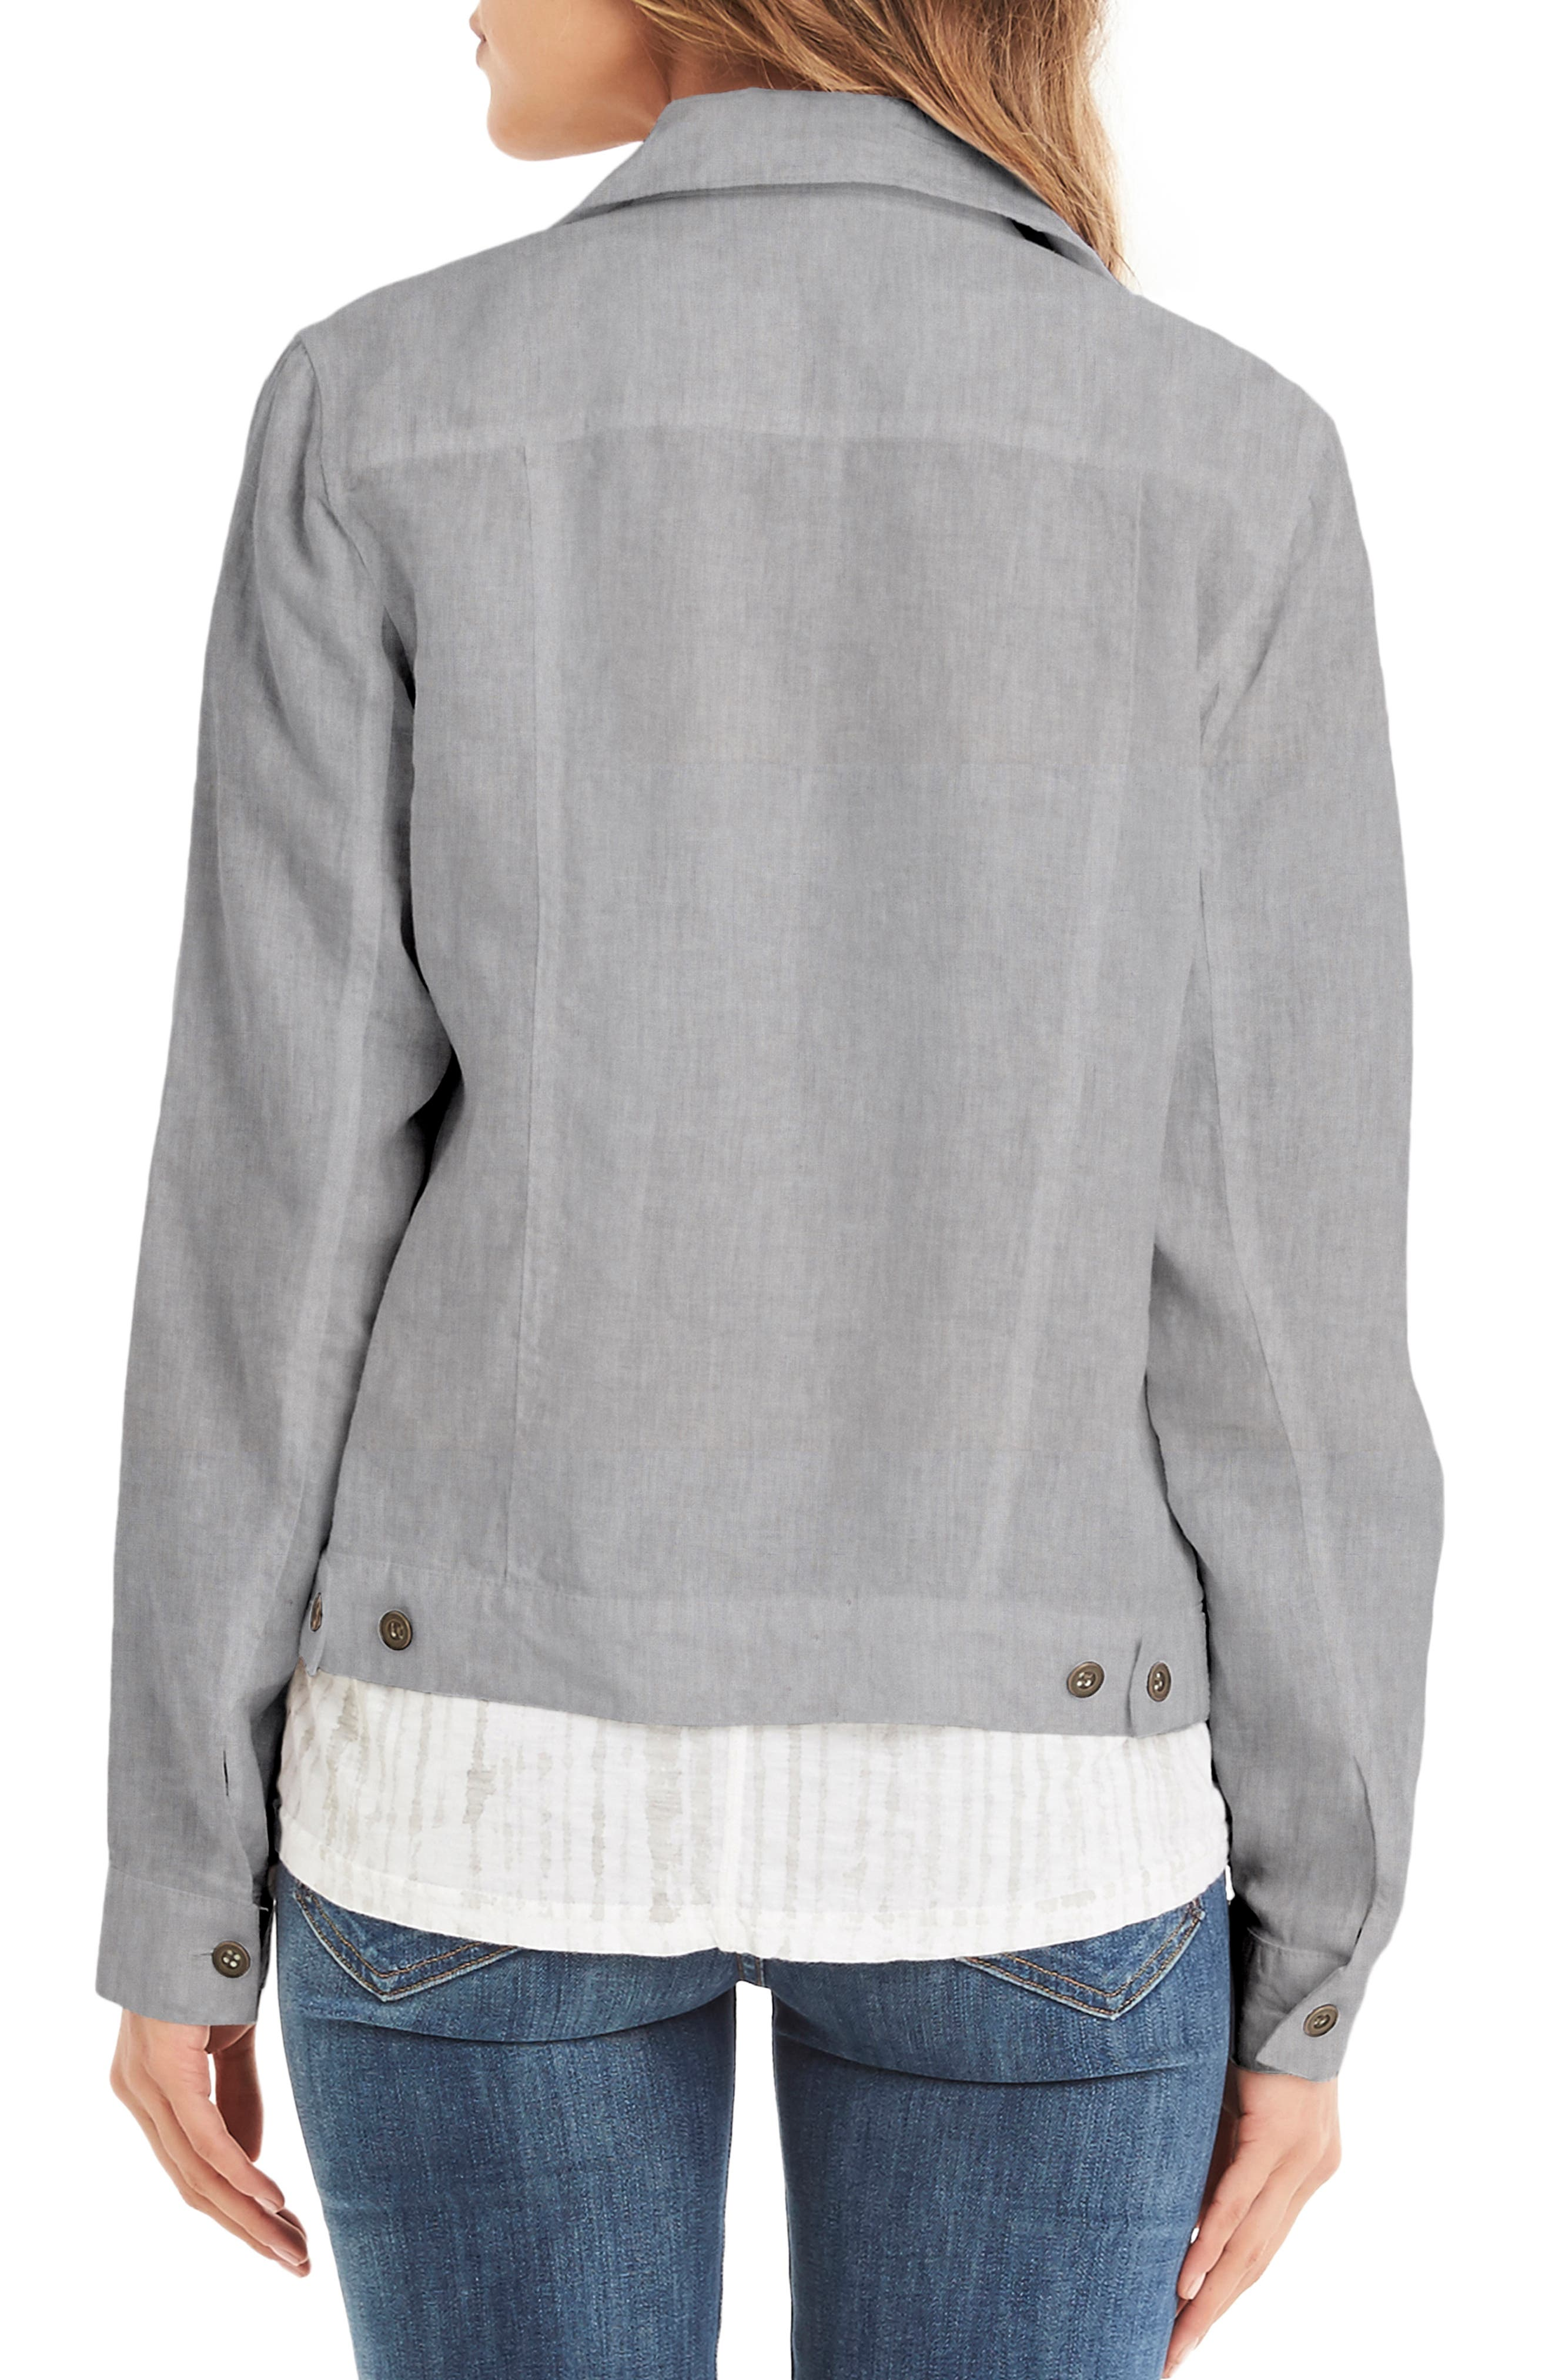 Linen Denim Jacket,                             Alternate thumbnail 2, color,                             Galvanized